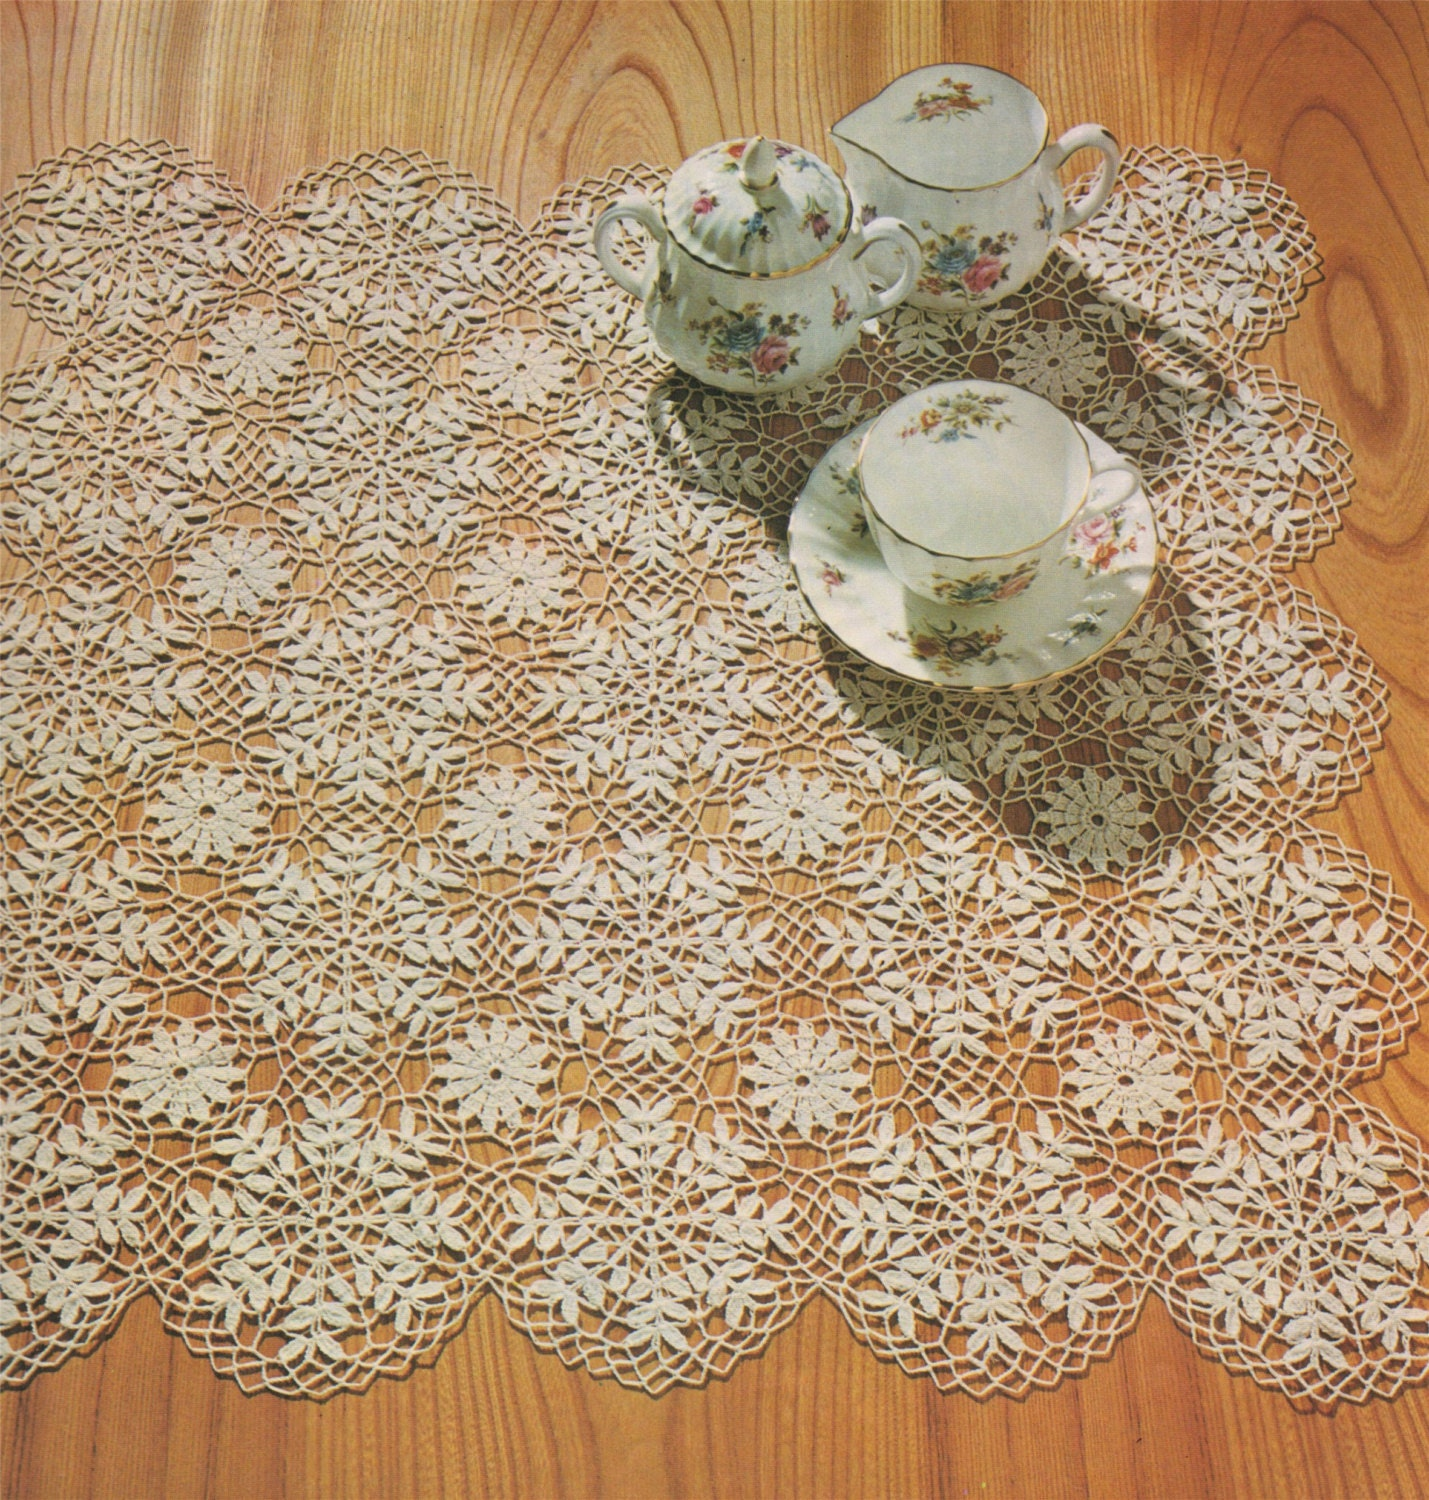 Small Tablecloth e-pattern Download Vintage Crochet Patterns for the Home Square Tablecloth Crochet Pattern PDF Square Doily Mat